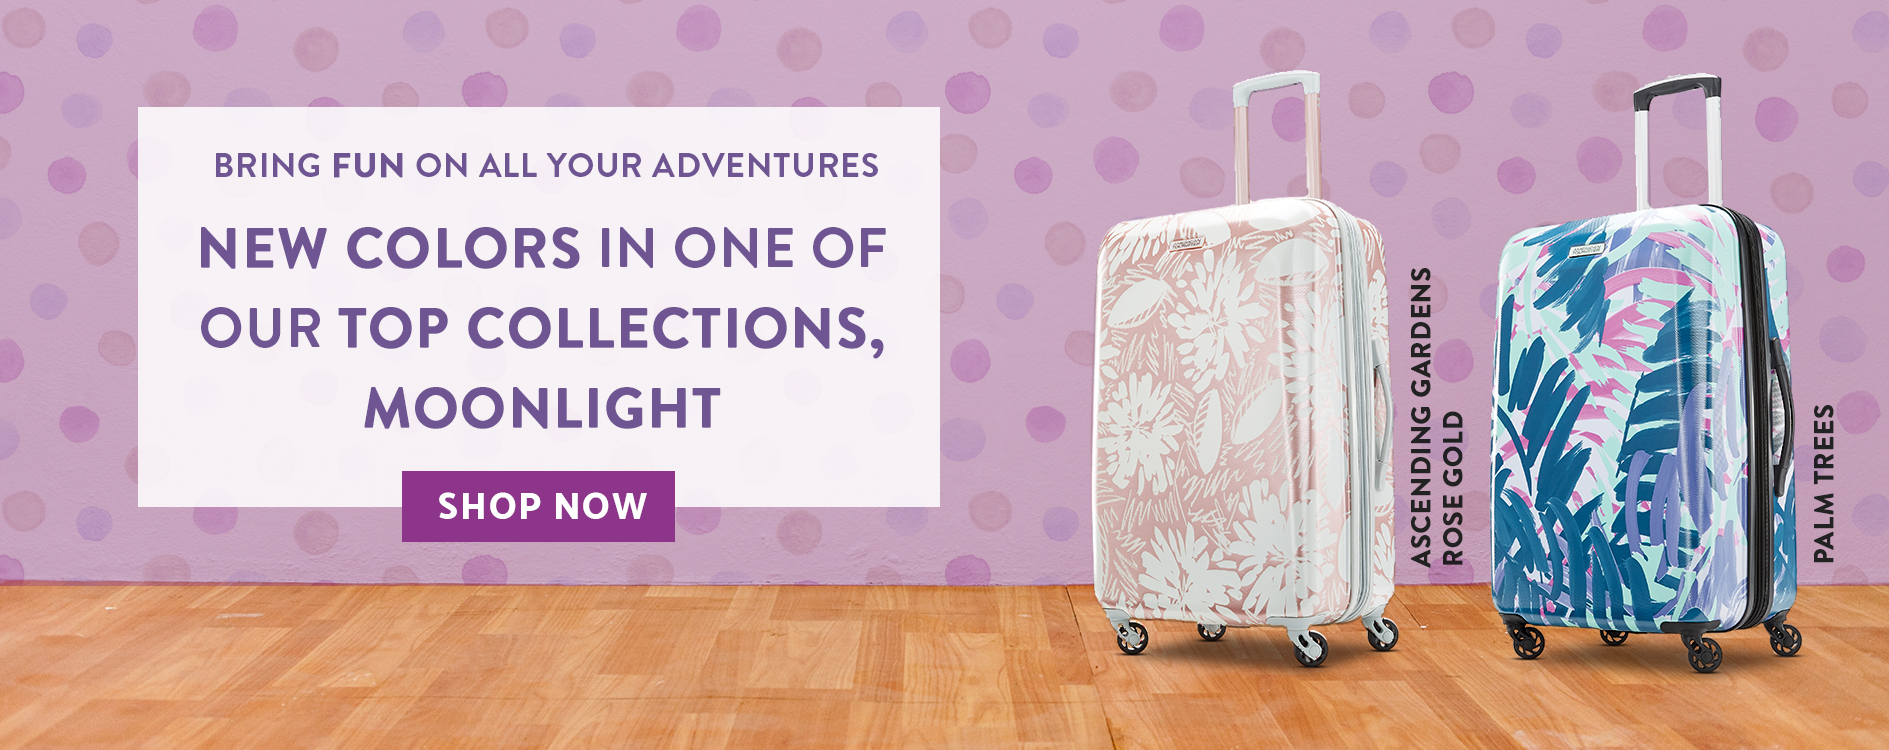 0f1e5c4166e Bring fun on all your adventures. New Colors in one our top collections,  Moonlight